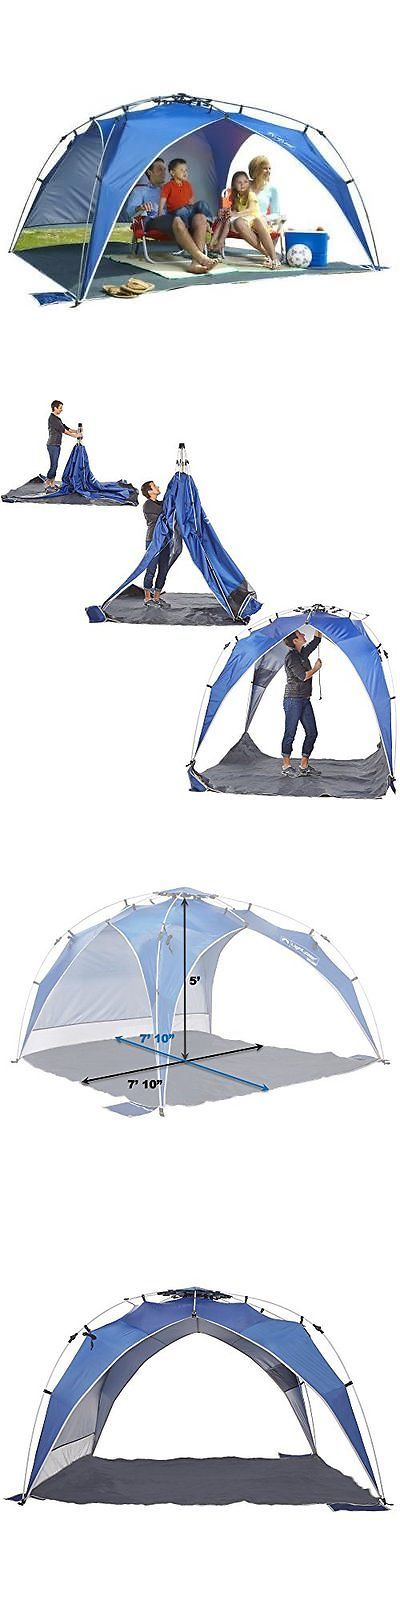 Canopies and Shelters 179011: Lightspeed Outdoors Quick Canopy Instant Pop Up Shade Tent New BUY IT NOW ONLY: $107.63